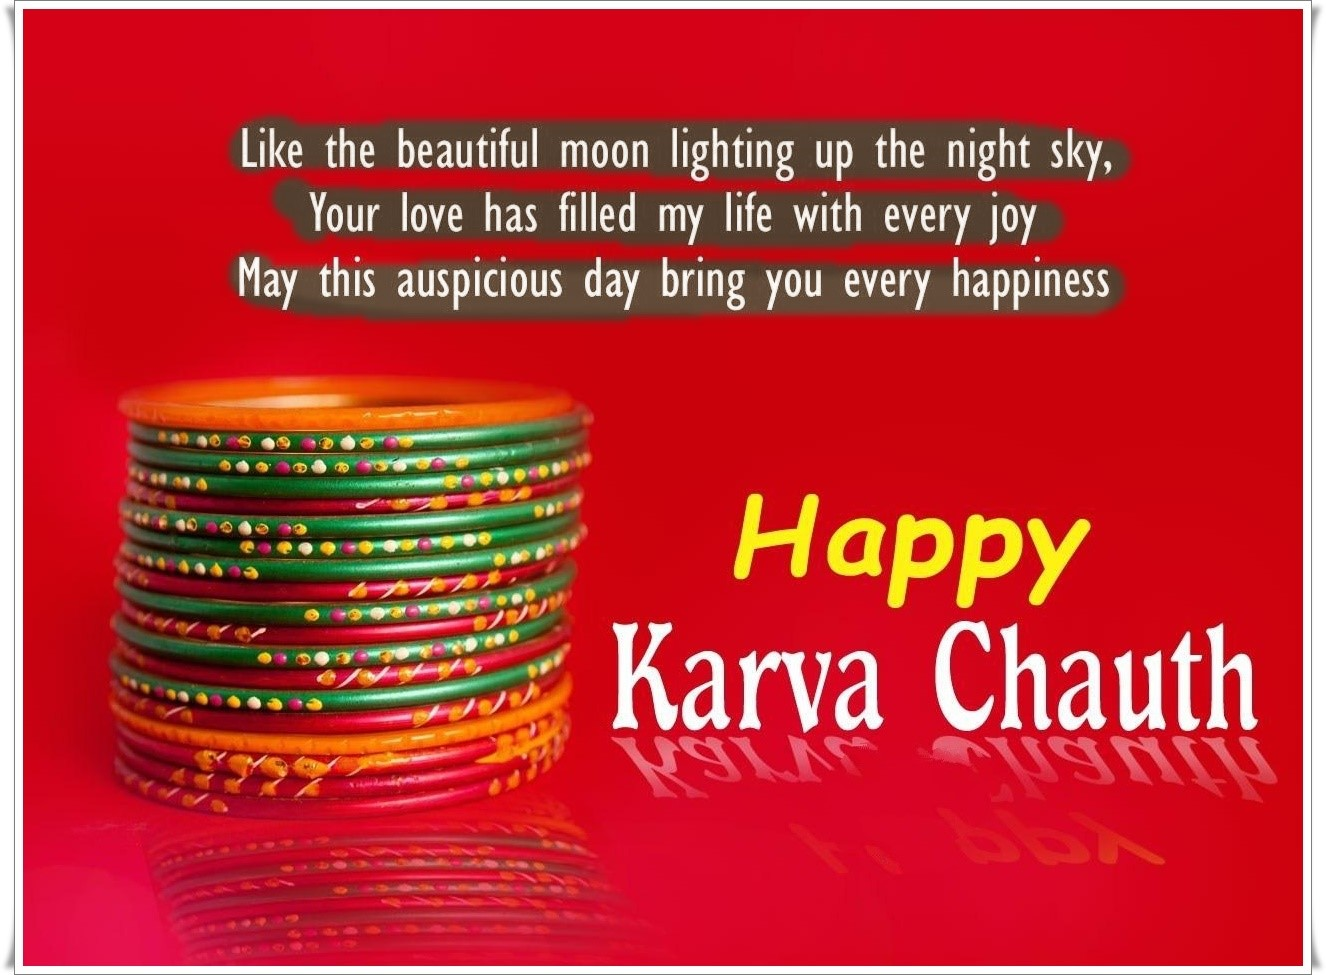 happy karva chauth images